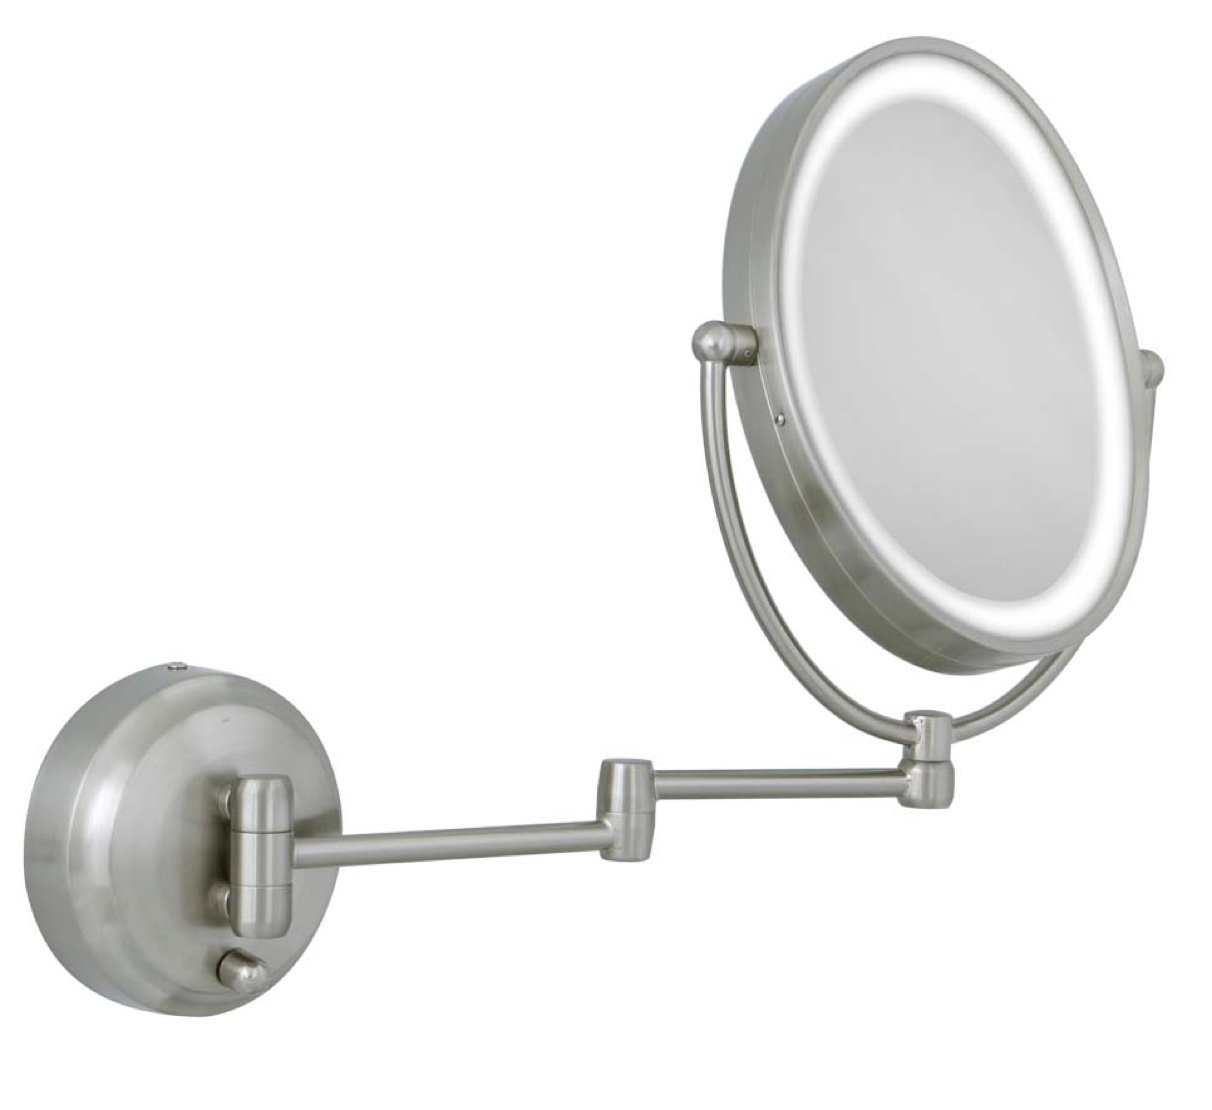 Amazon zadro 10x1x next generation led lighted oval wall amazon zadro 10x1x next generation led lighted oval wall mount mirror satin nickel personal makeup mirrors beauty amipublicfo Gallery